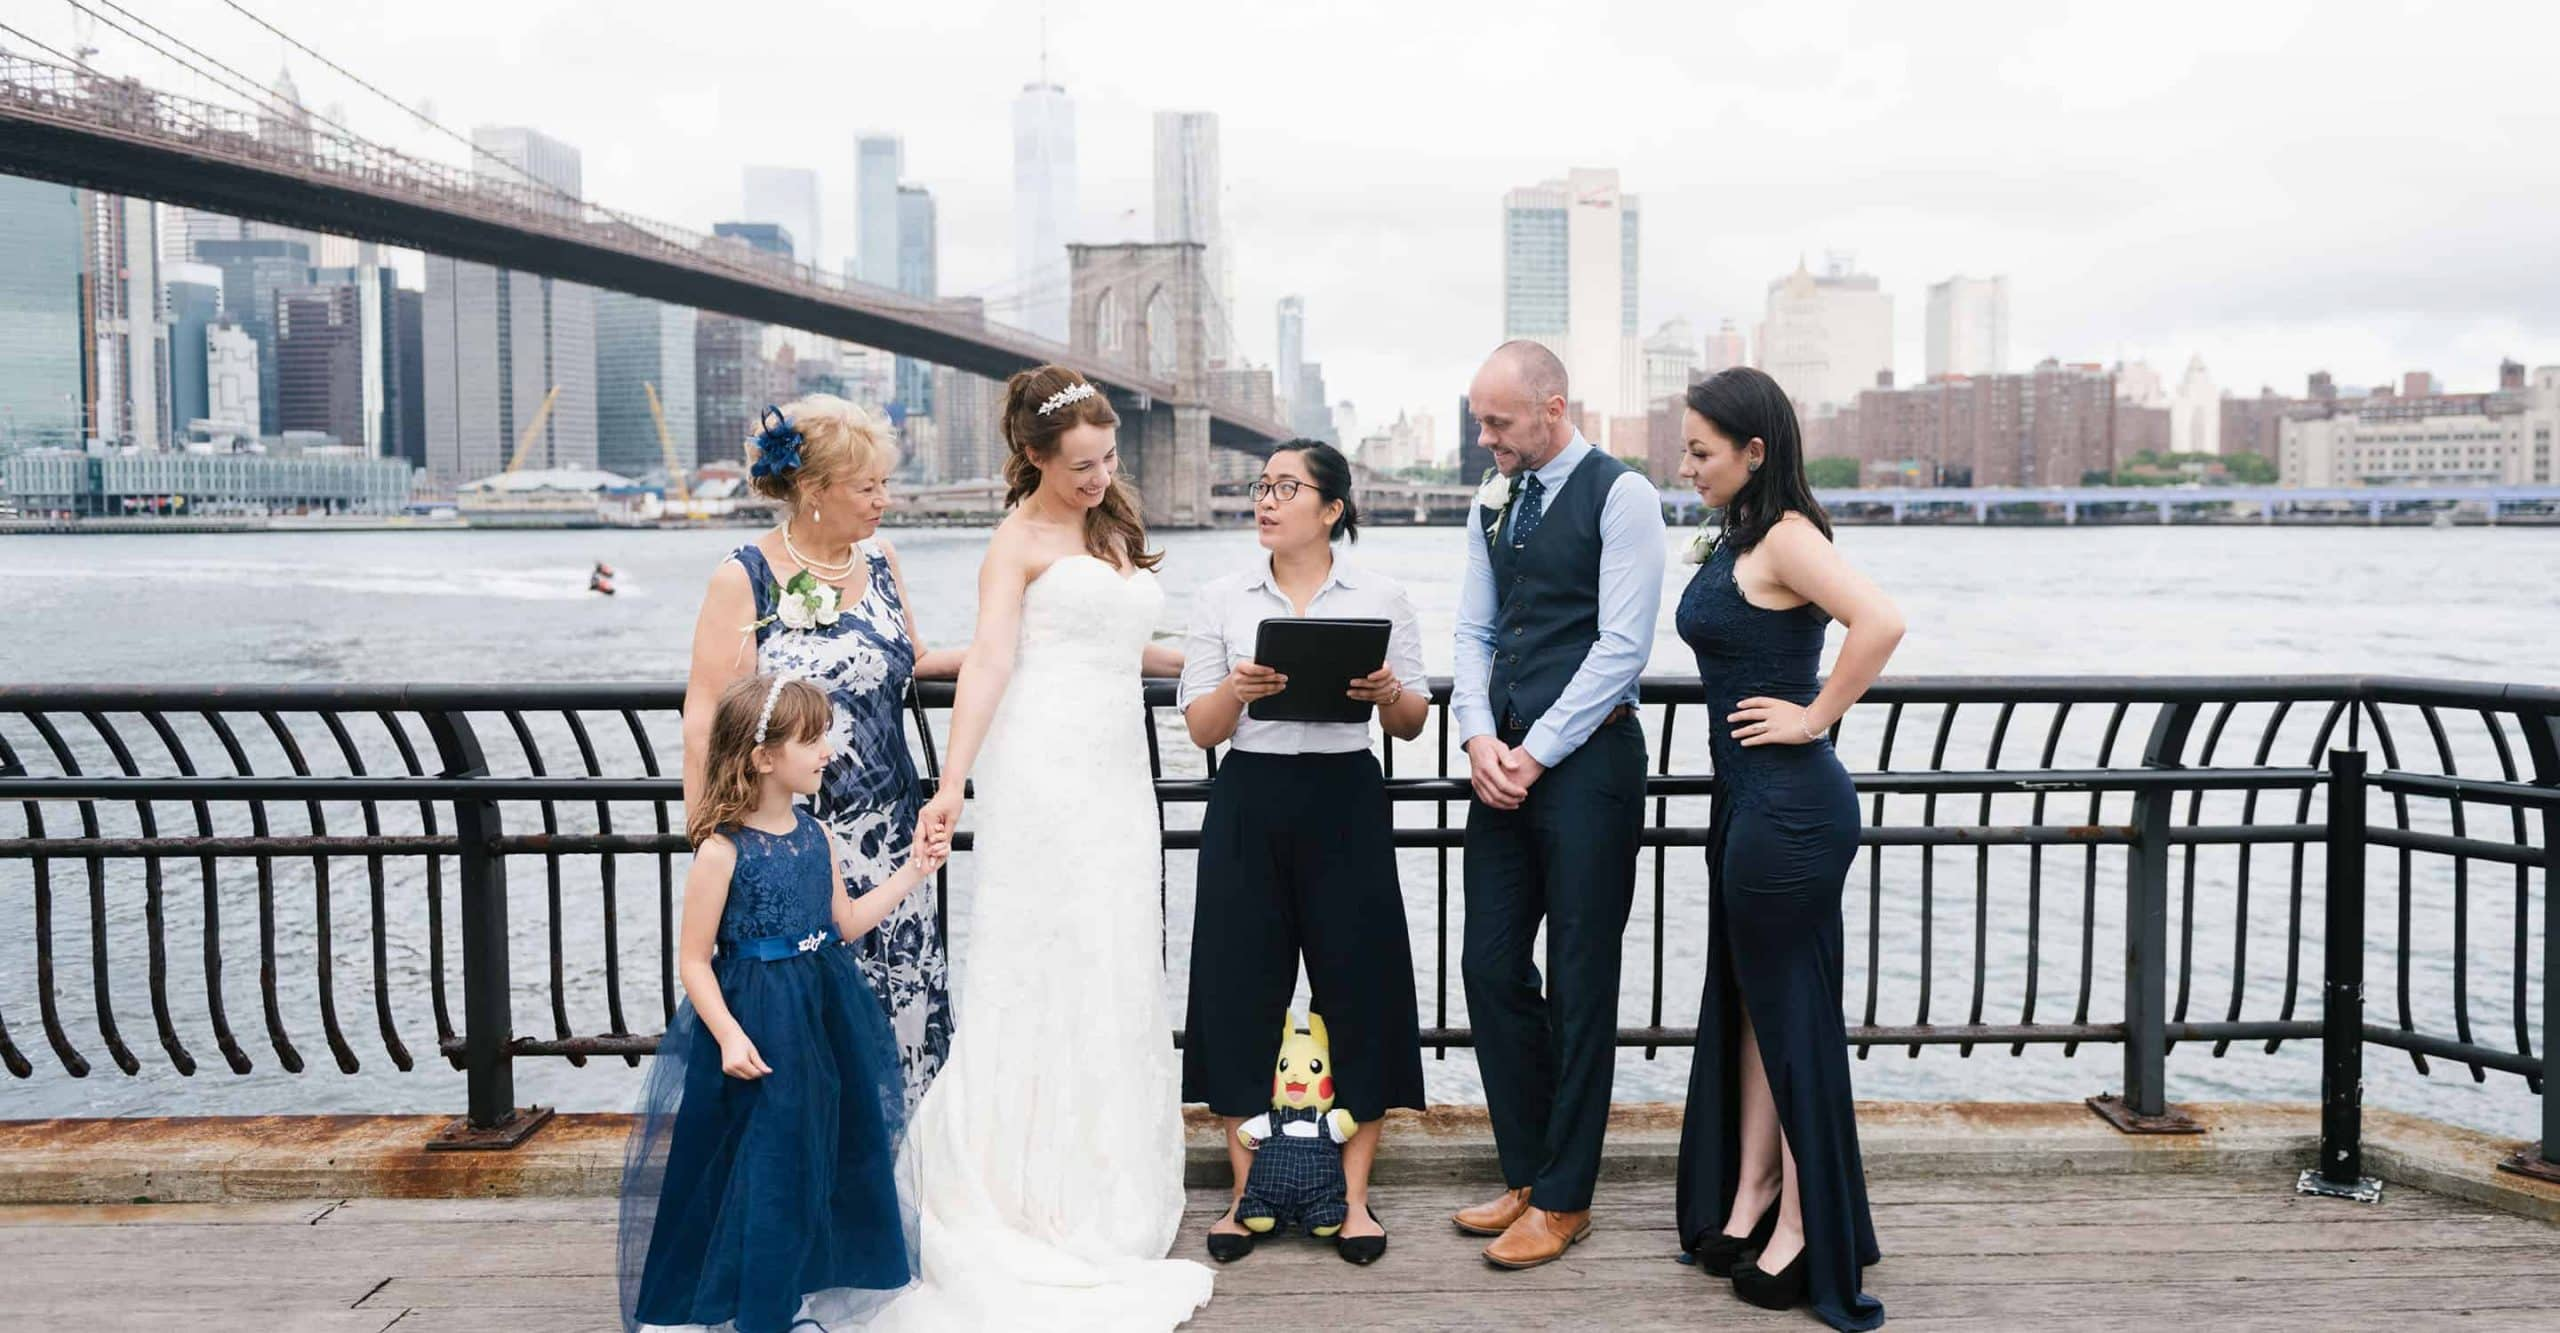 Cheap NYC elopement locations